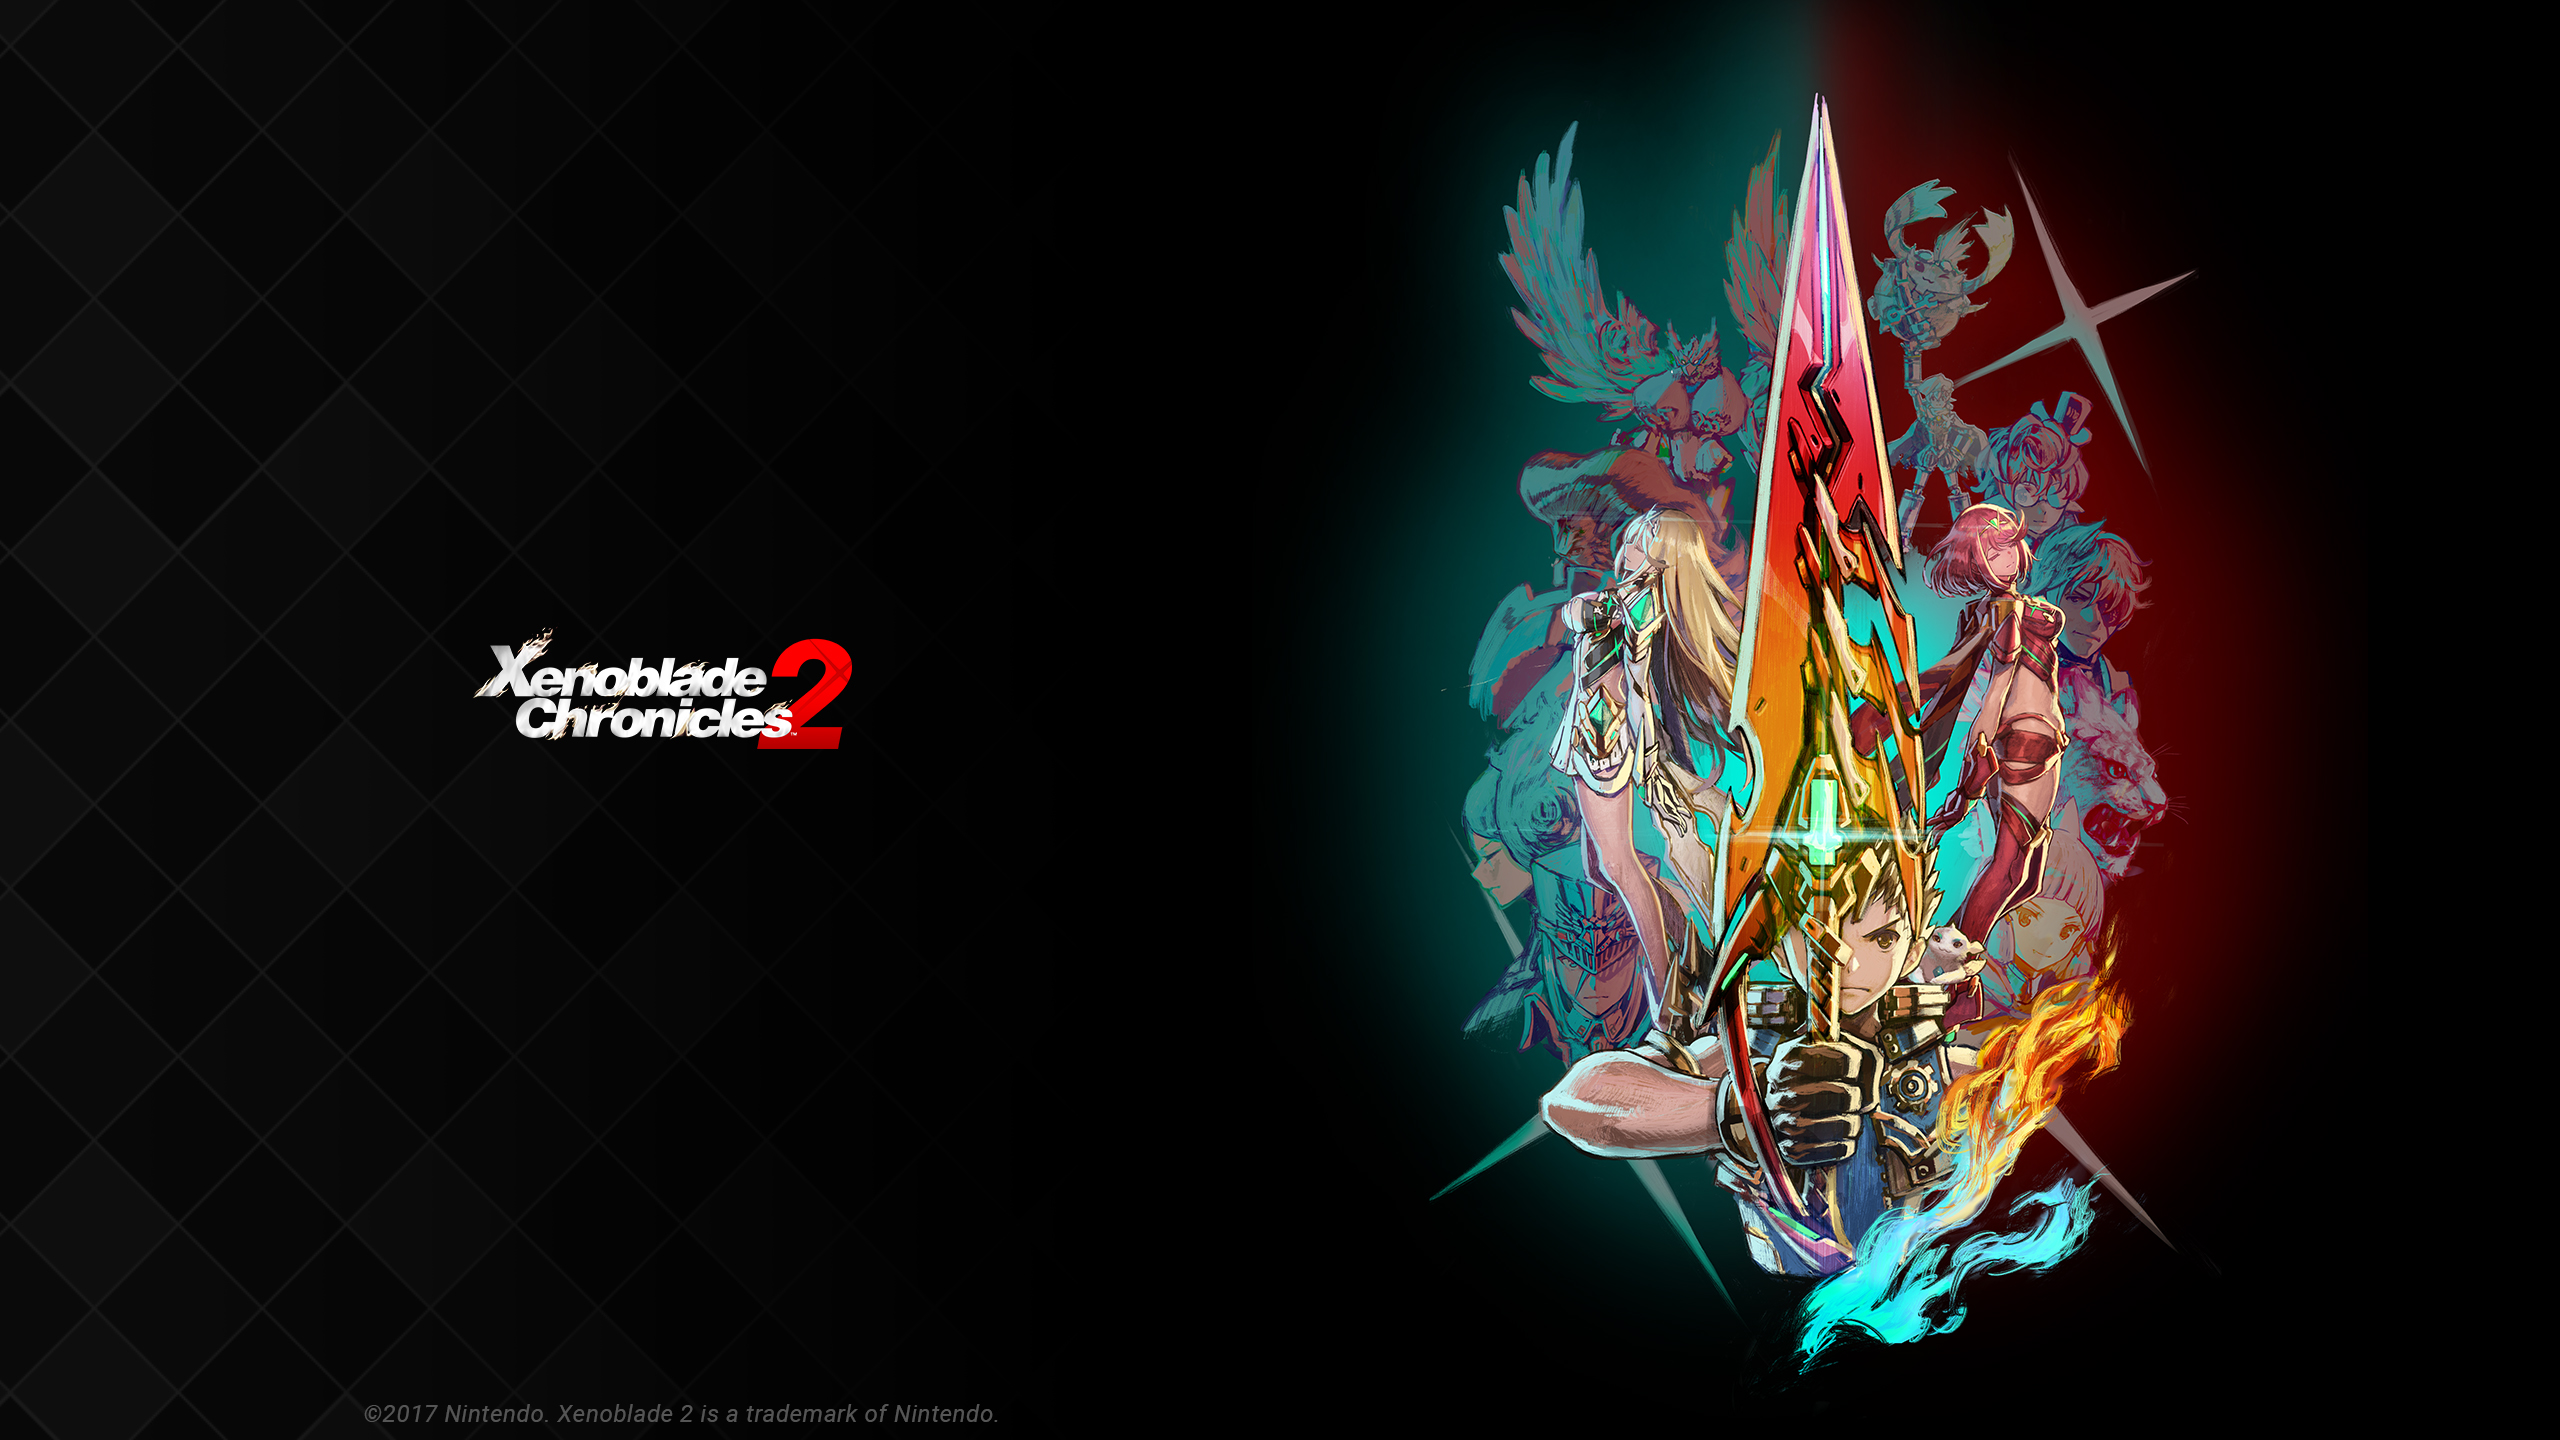 17 Xenoblade Chronicles 2 HD Wallpapers Background Images 2560x1440